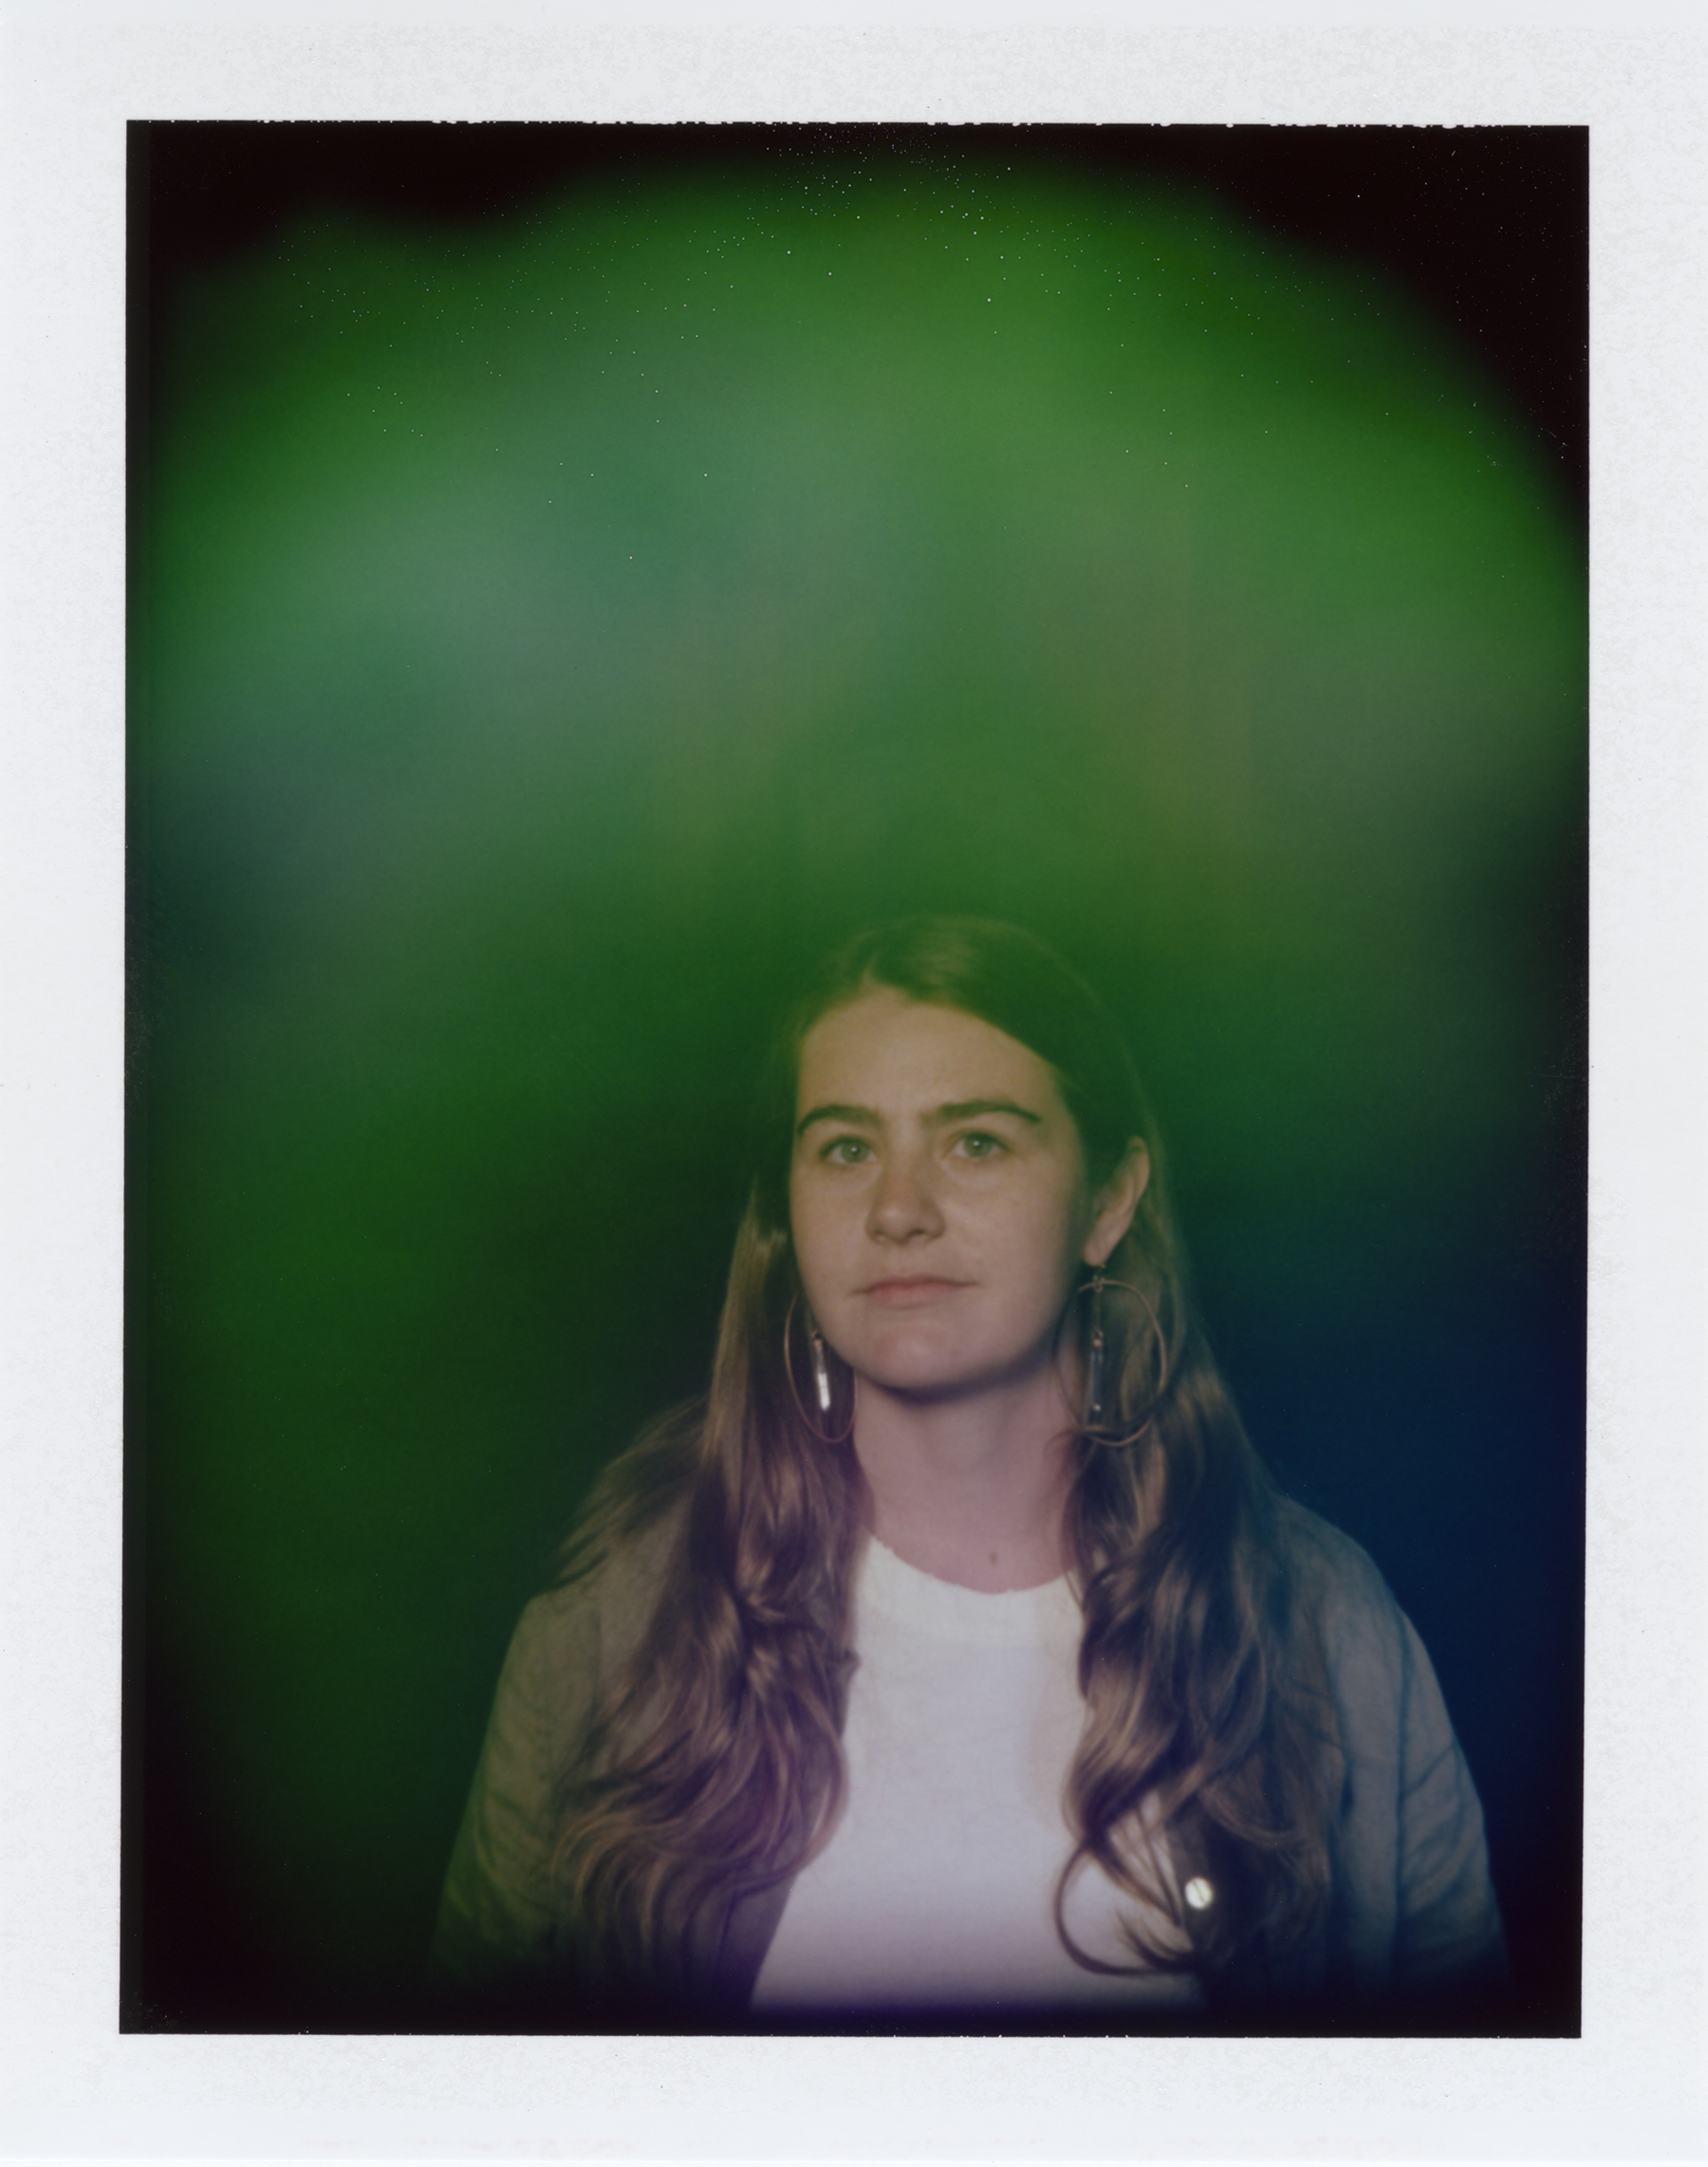 Aura photographed May 23rd at the Whitney Museum by Radiant Human